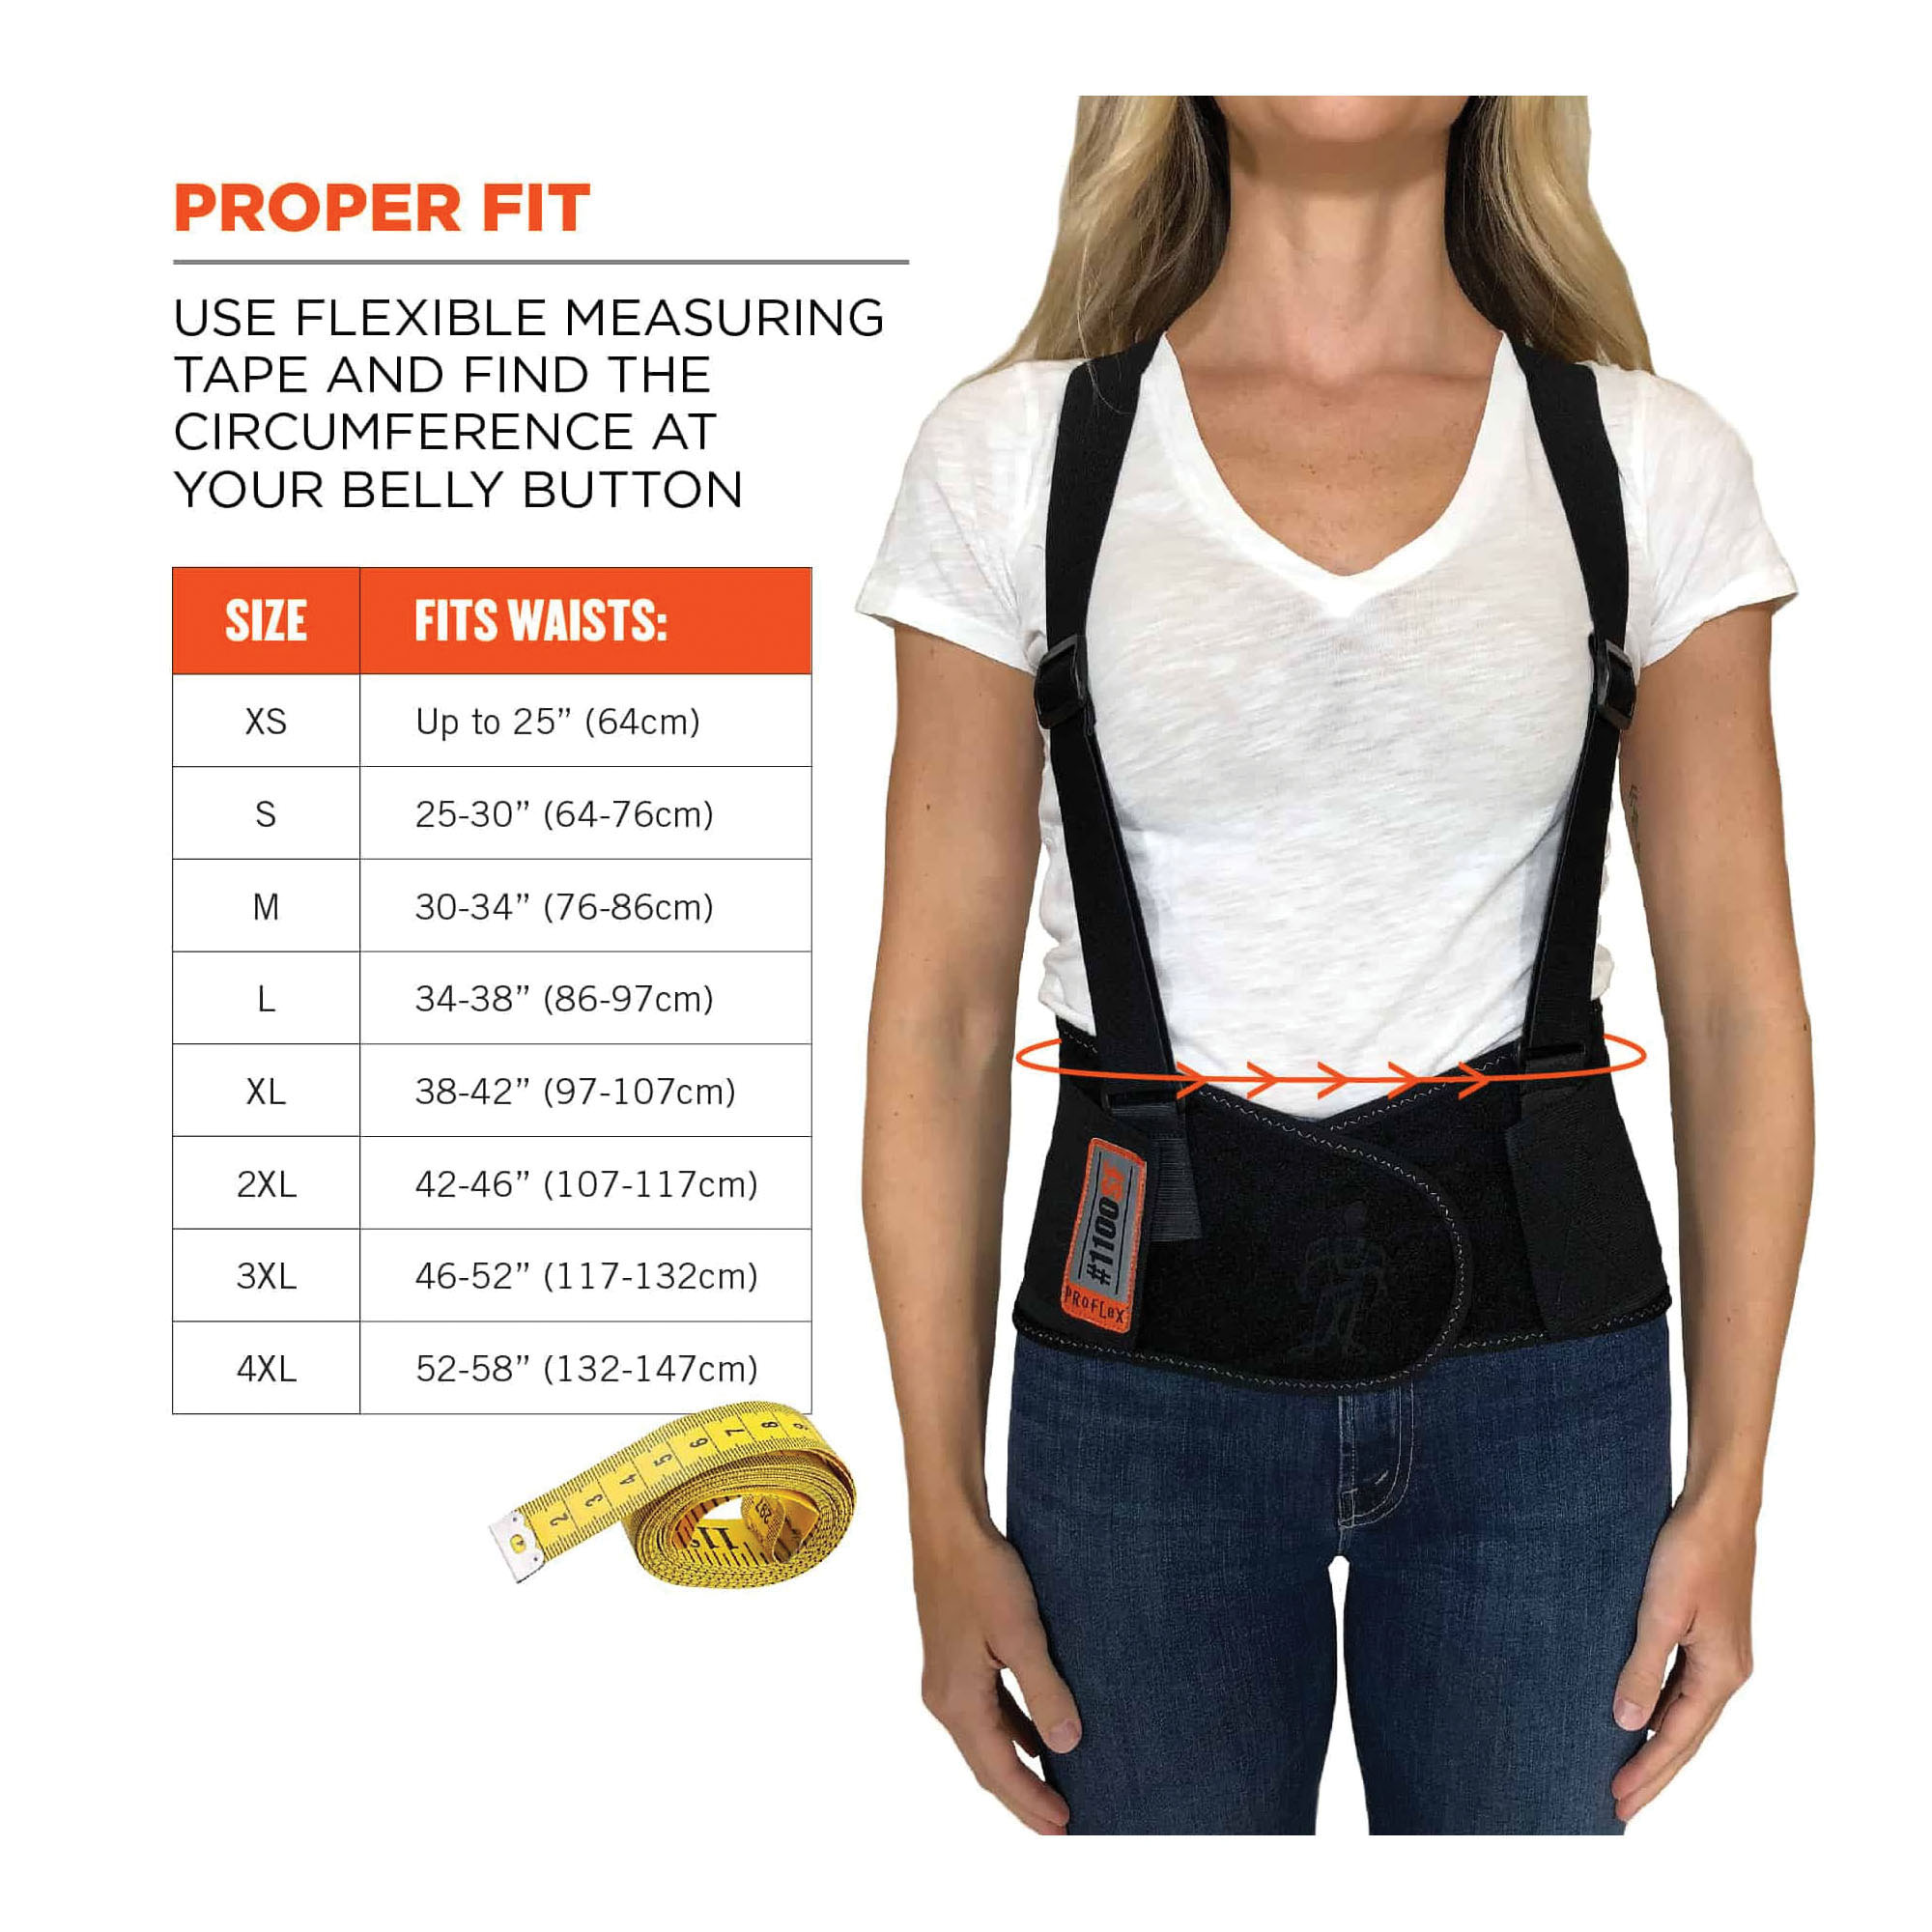 ProFlex® 11493 1505 Low Profile Weight Lifters Back Support, L, 34 to 38 in Fits Waist, 6-1/4 in W, Nylon/Rubber Webbing, Black, Hook and Loop Closure